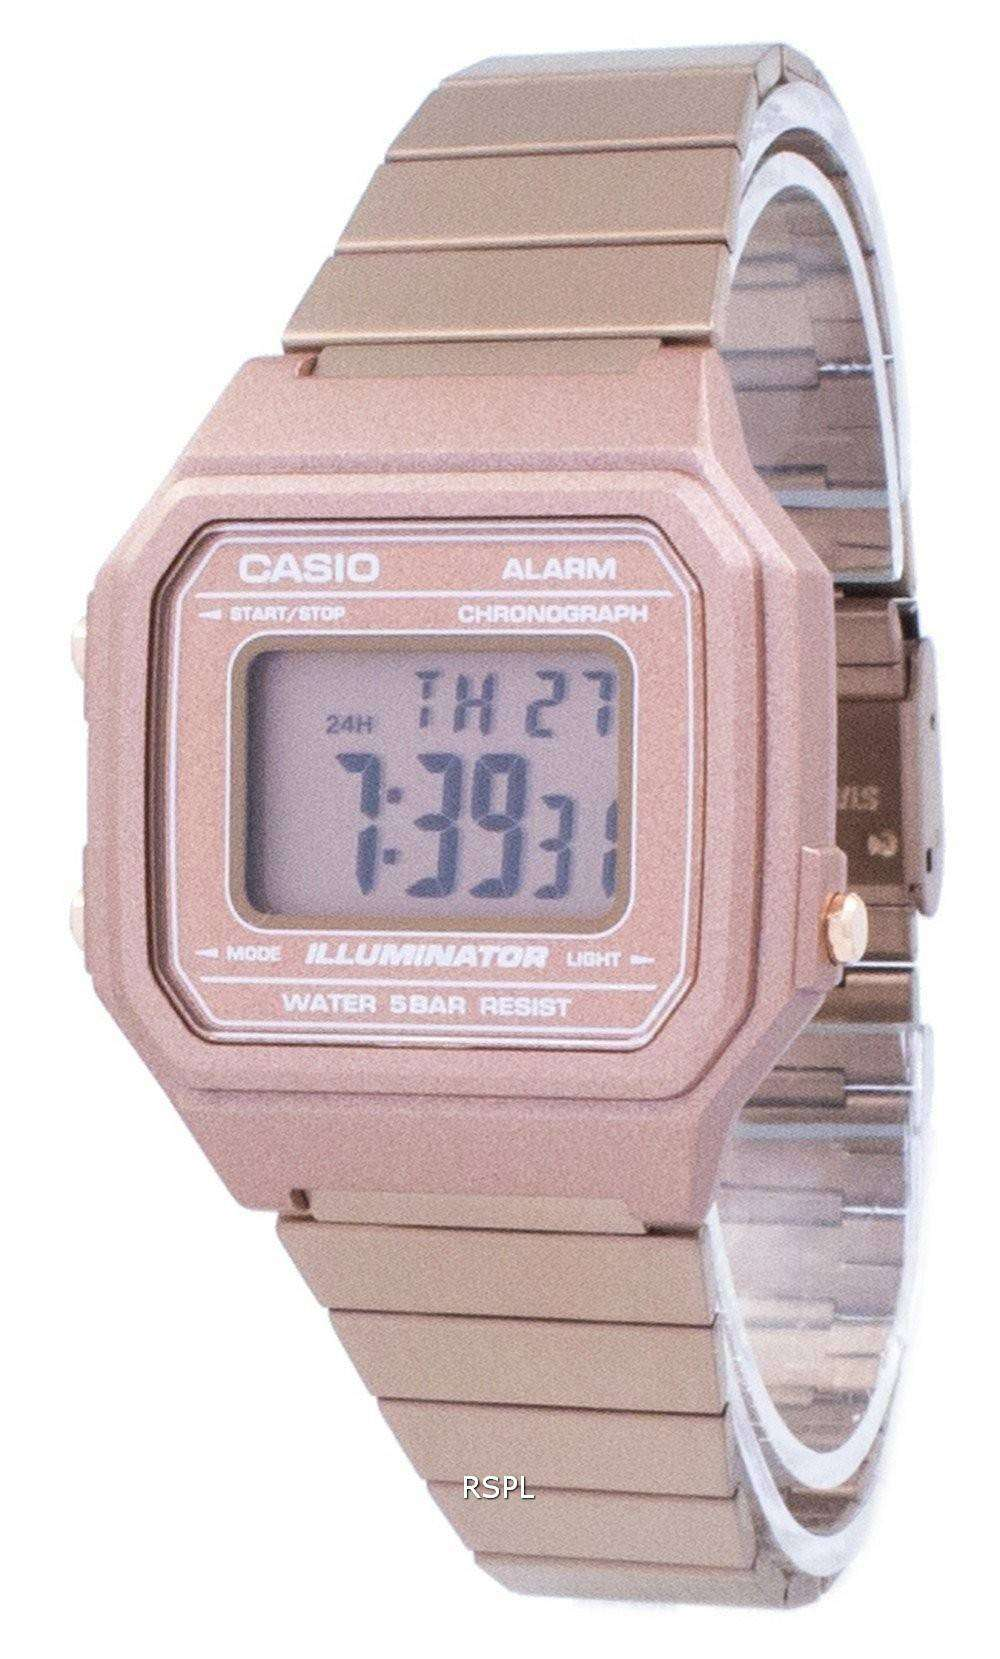 7a090b8b12a Casio Vintage Illuminator Chronograph Alarm Digital B650WC-5A Unisex Watch  1 ...